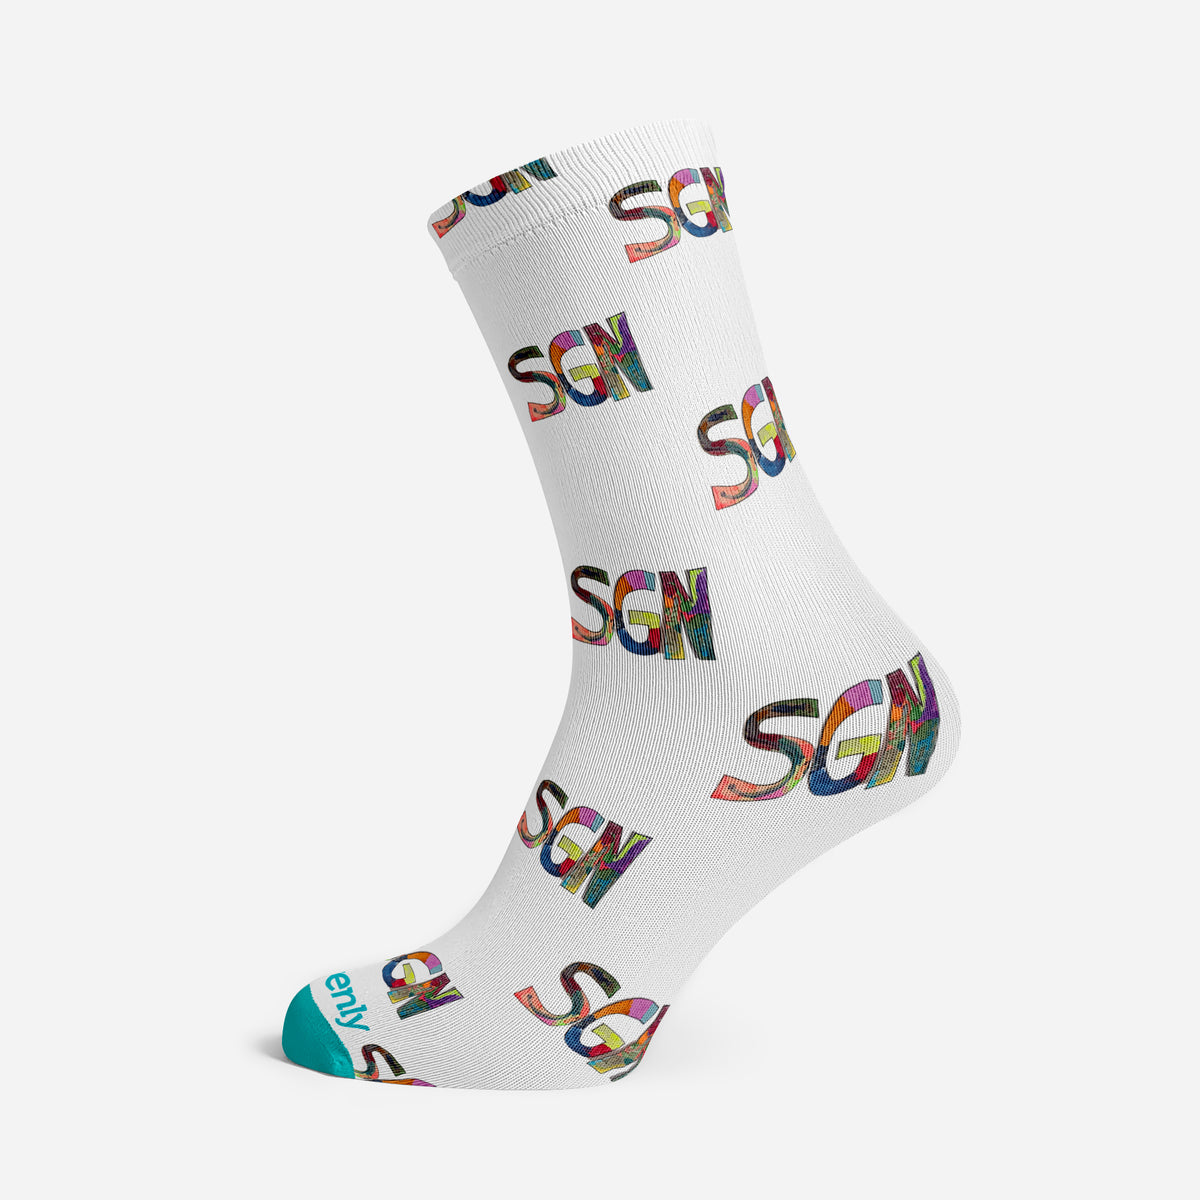 SGN LOGO PREMIUM ADULTS SOCKS